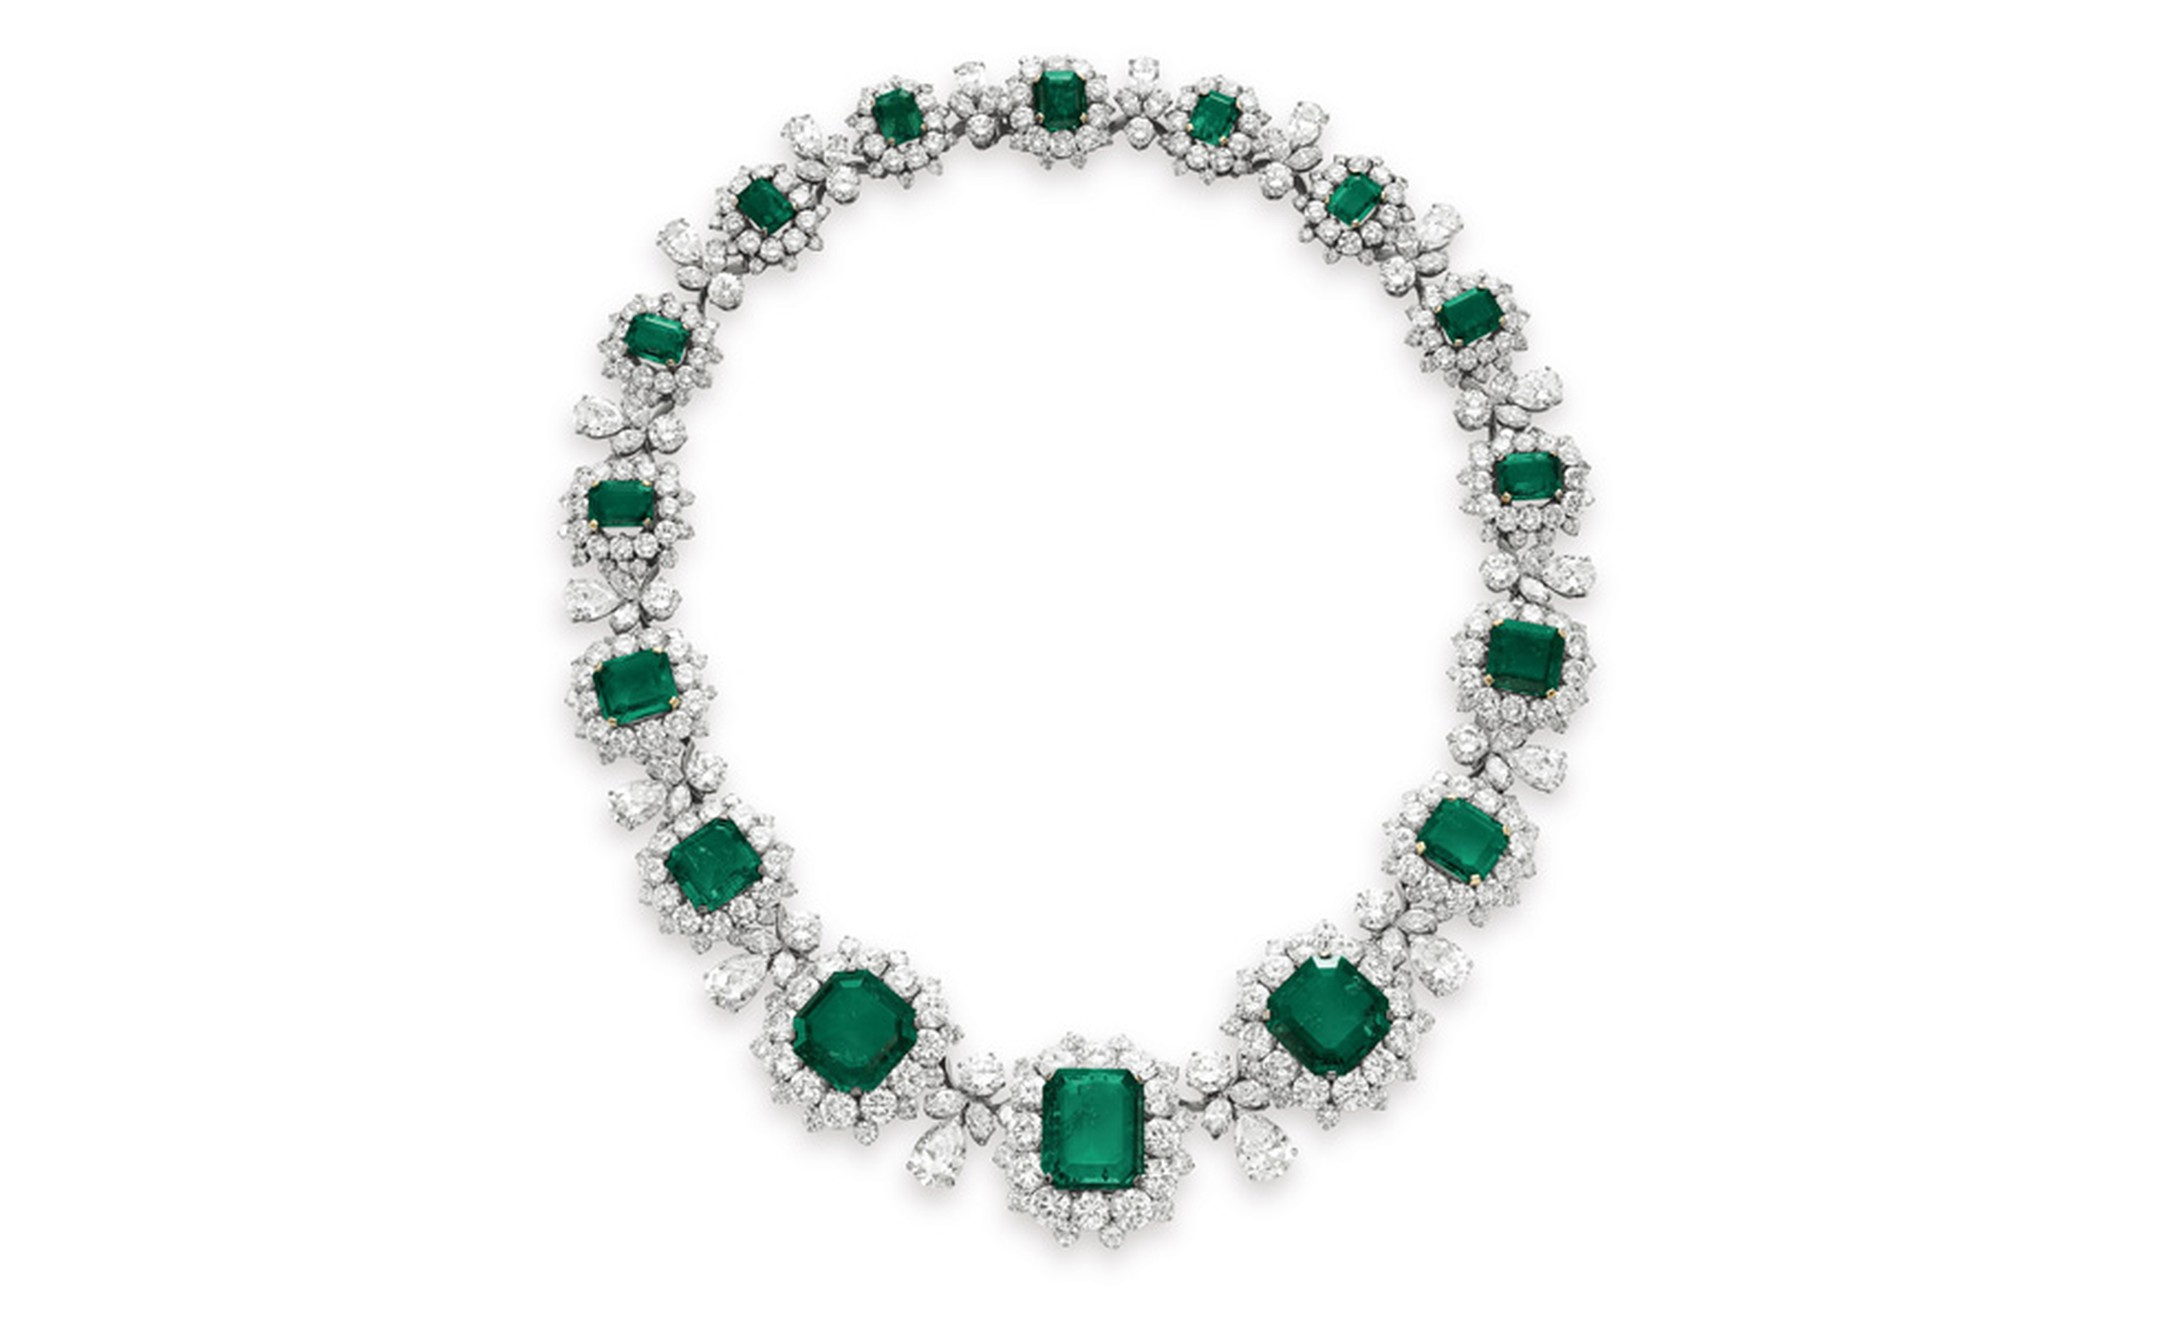 The BVLGARI Emerald Necklace, estimate: $1,000,000 – 1,500,000. The necklace can be worn with an emerald pendant.